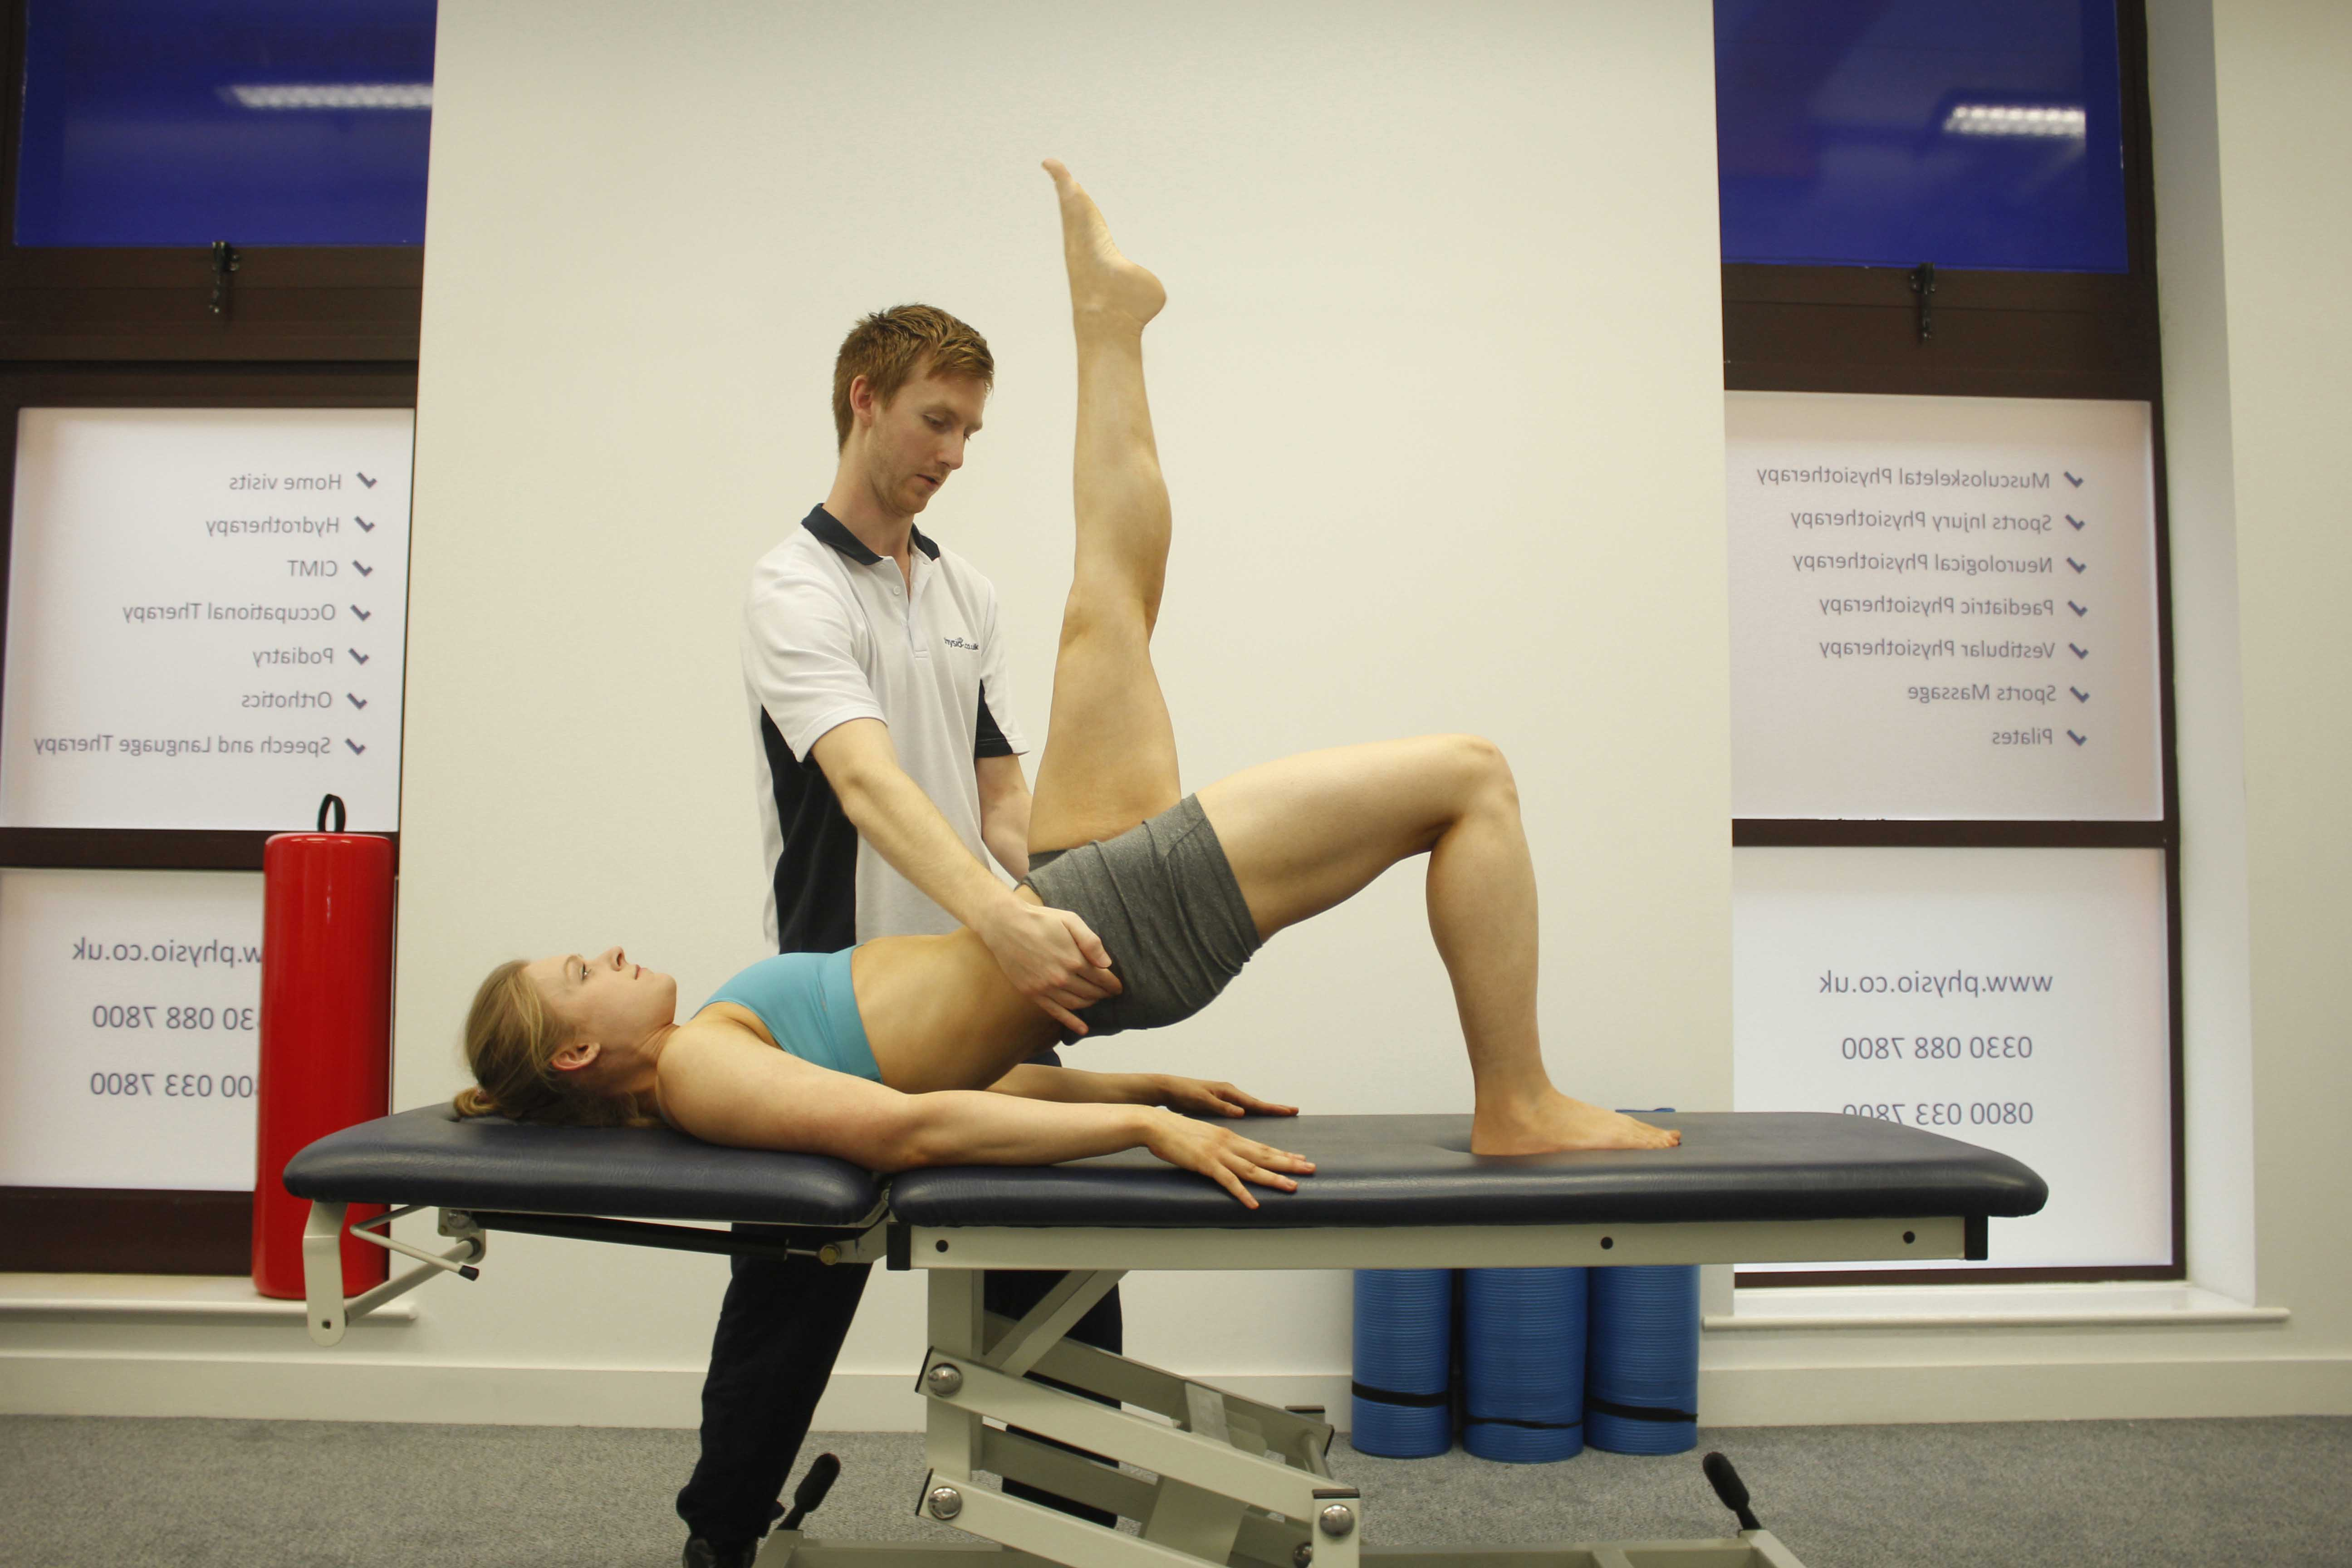 Our therapists may incorporate pilates based exercises into treatment sessions to target specific areas of weakness.